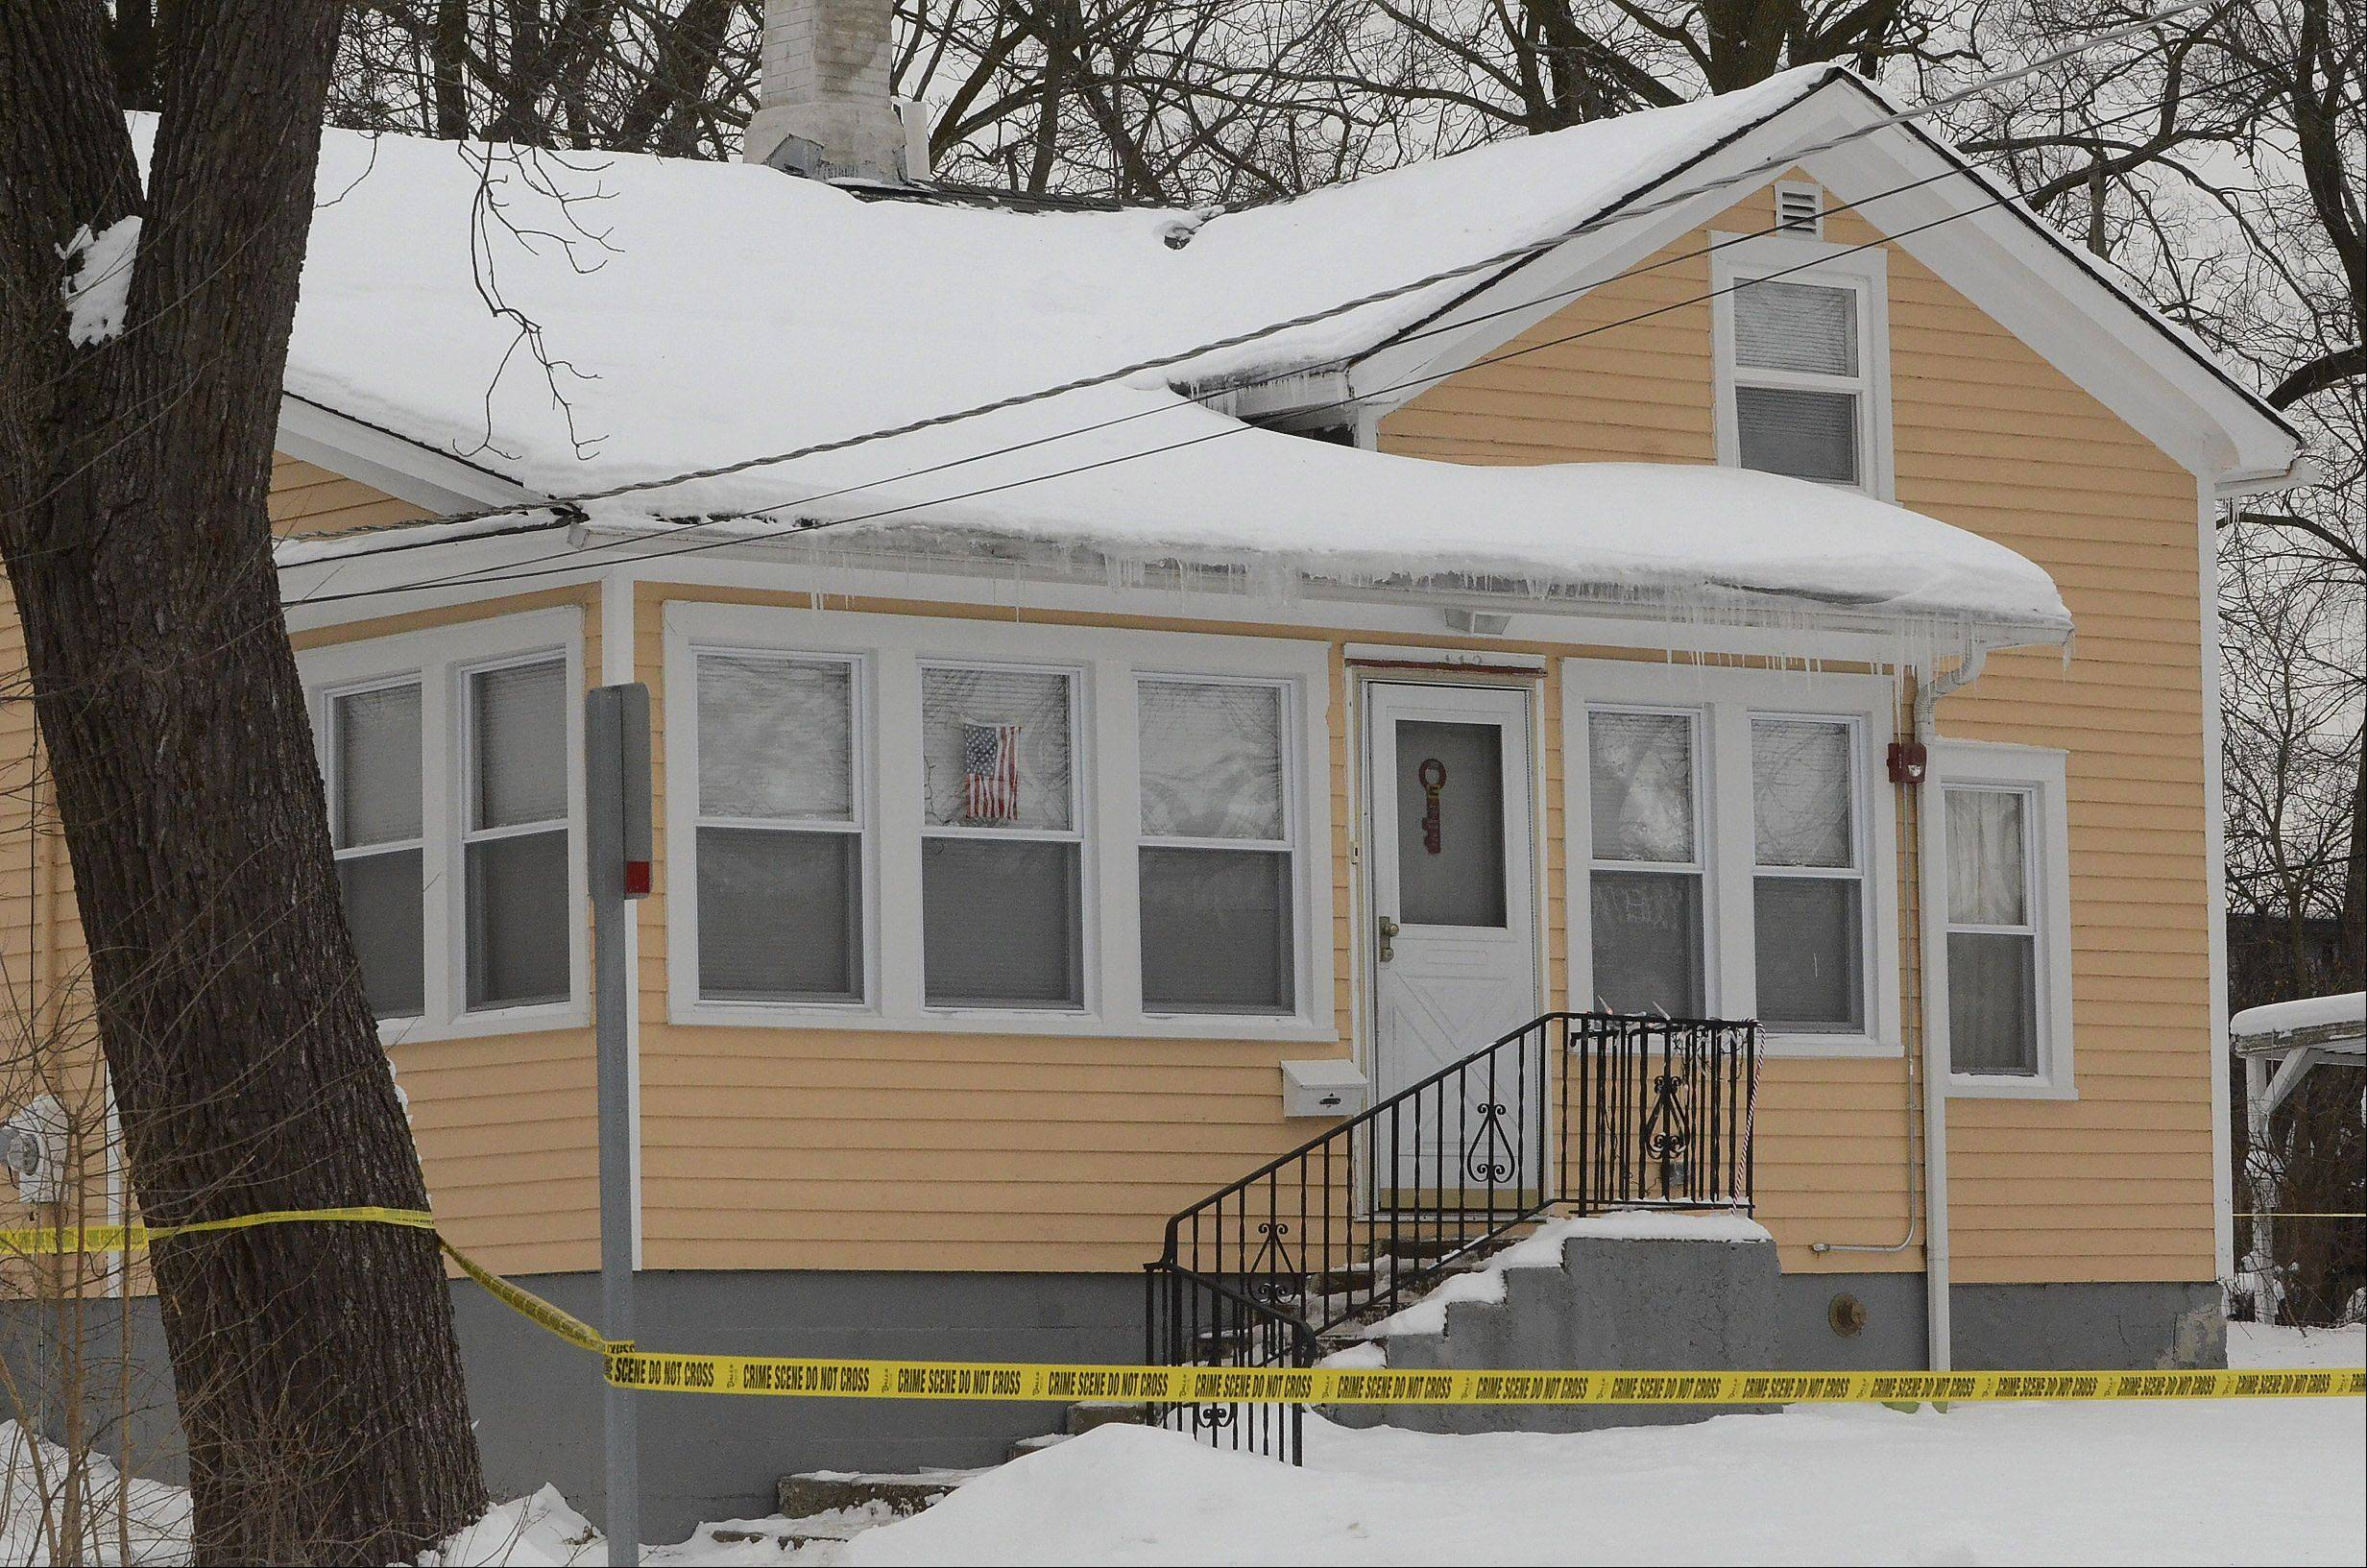 Health of dead baby's twin 'concerning' fire chief says